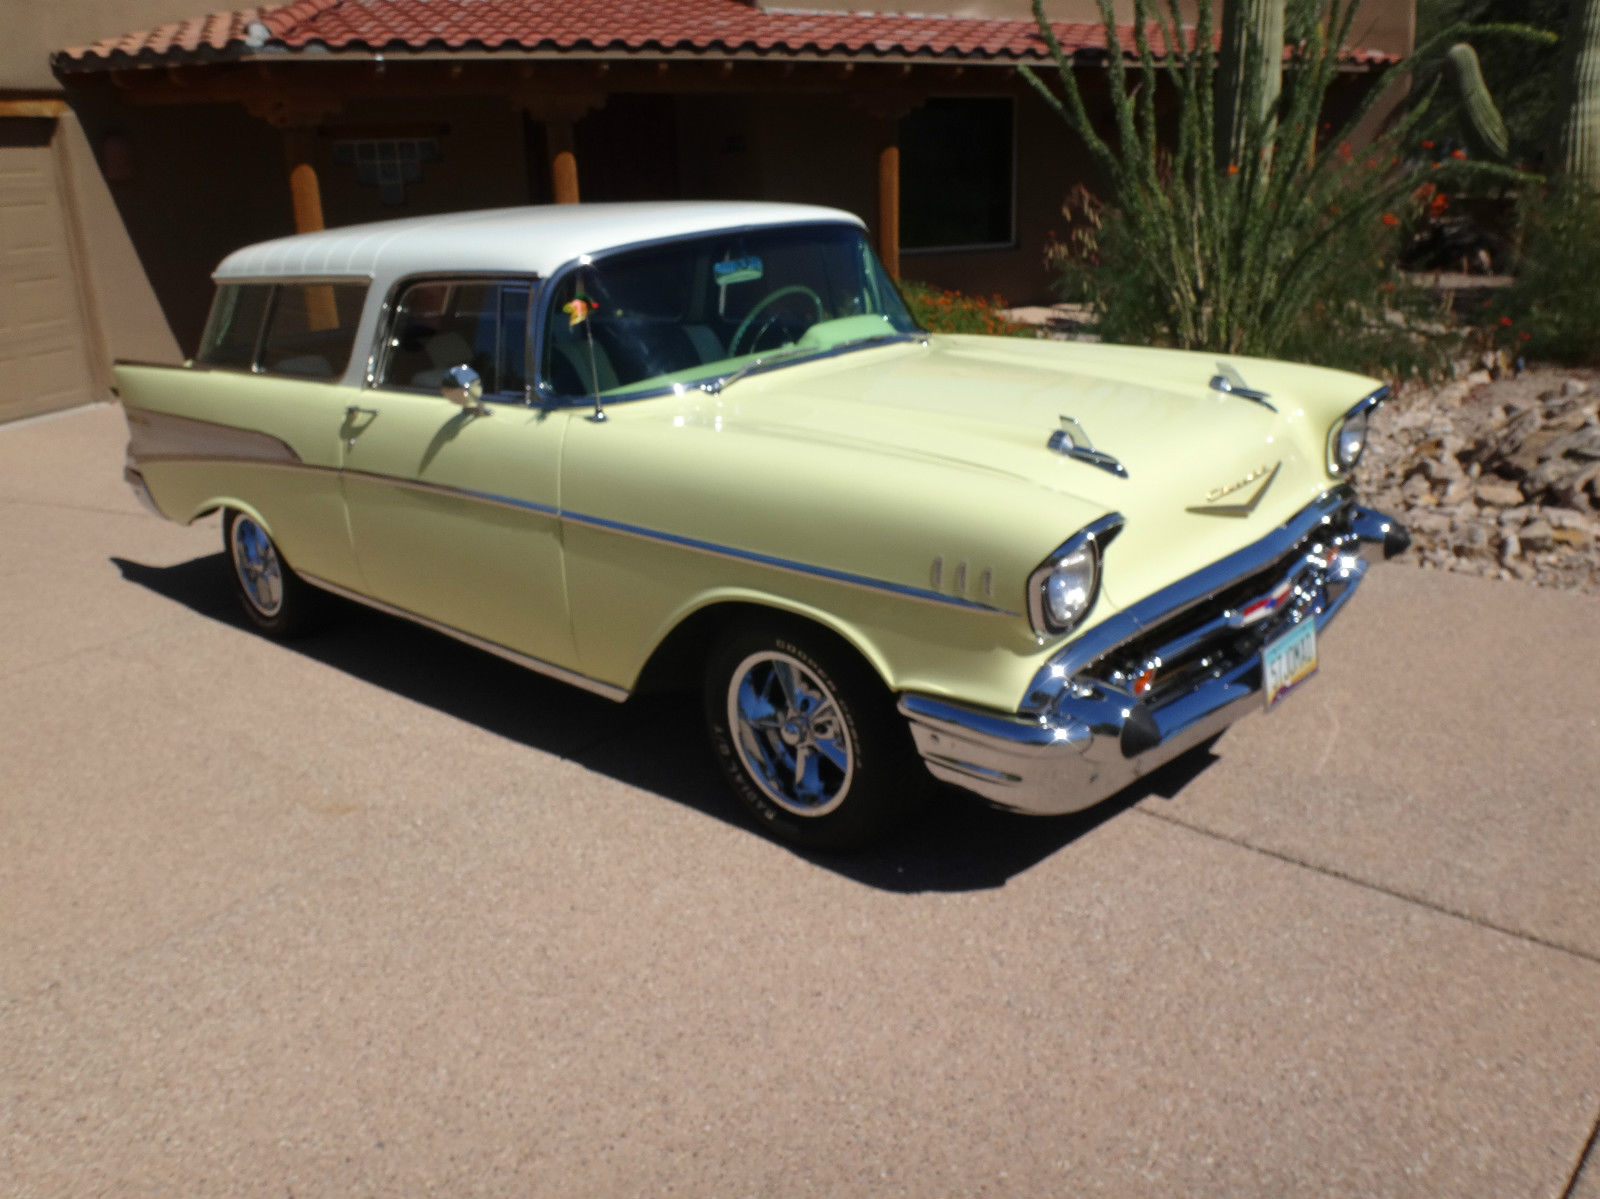 1957 Chevy Bel Air Nomad Restored Classic Chevrolet Wagon Prevnext